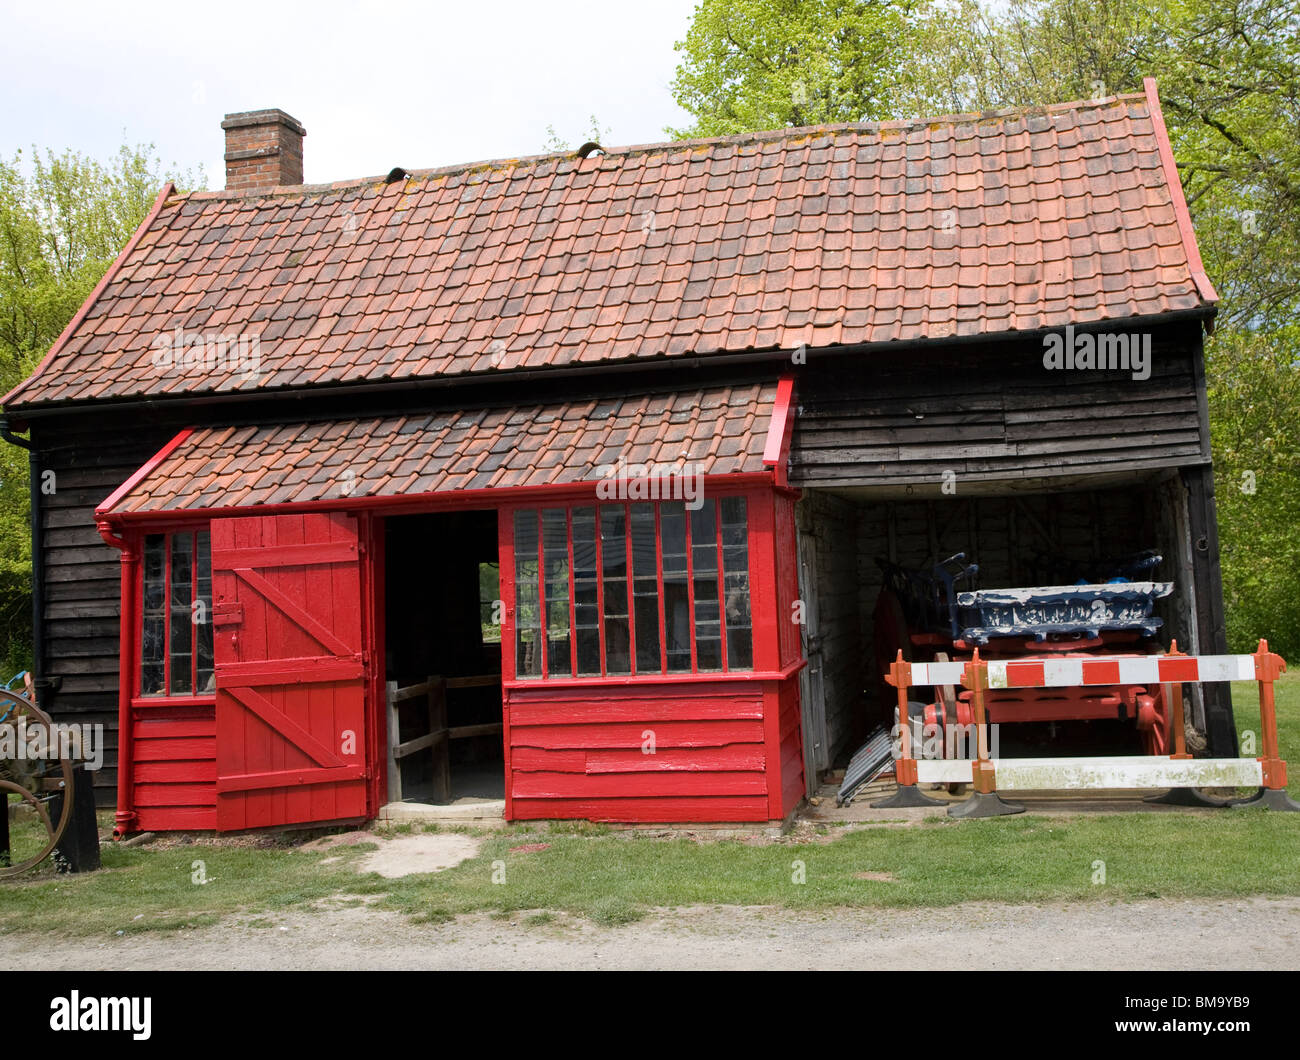 Blacksmith forge, Museum of East Anglian Life, Stowmarket, Suffolk - Stock Image